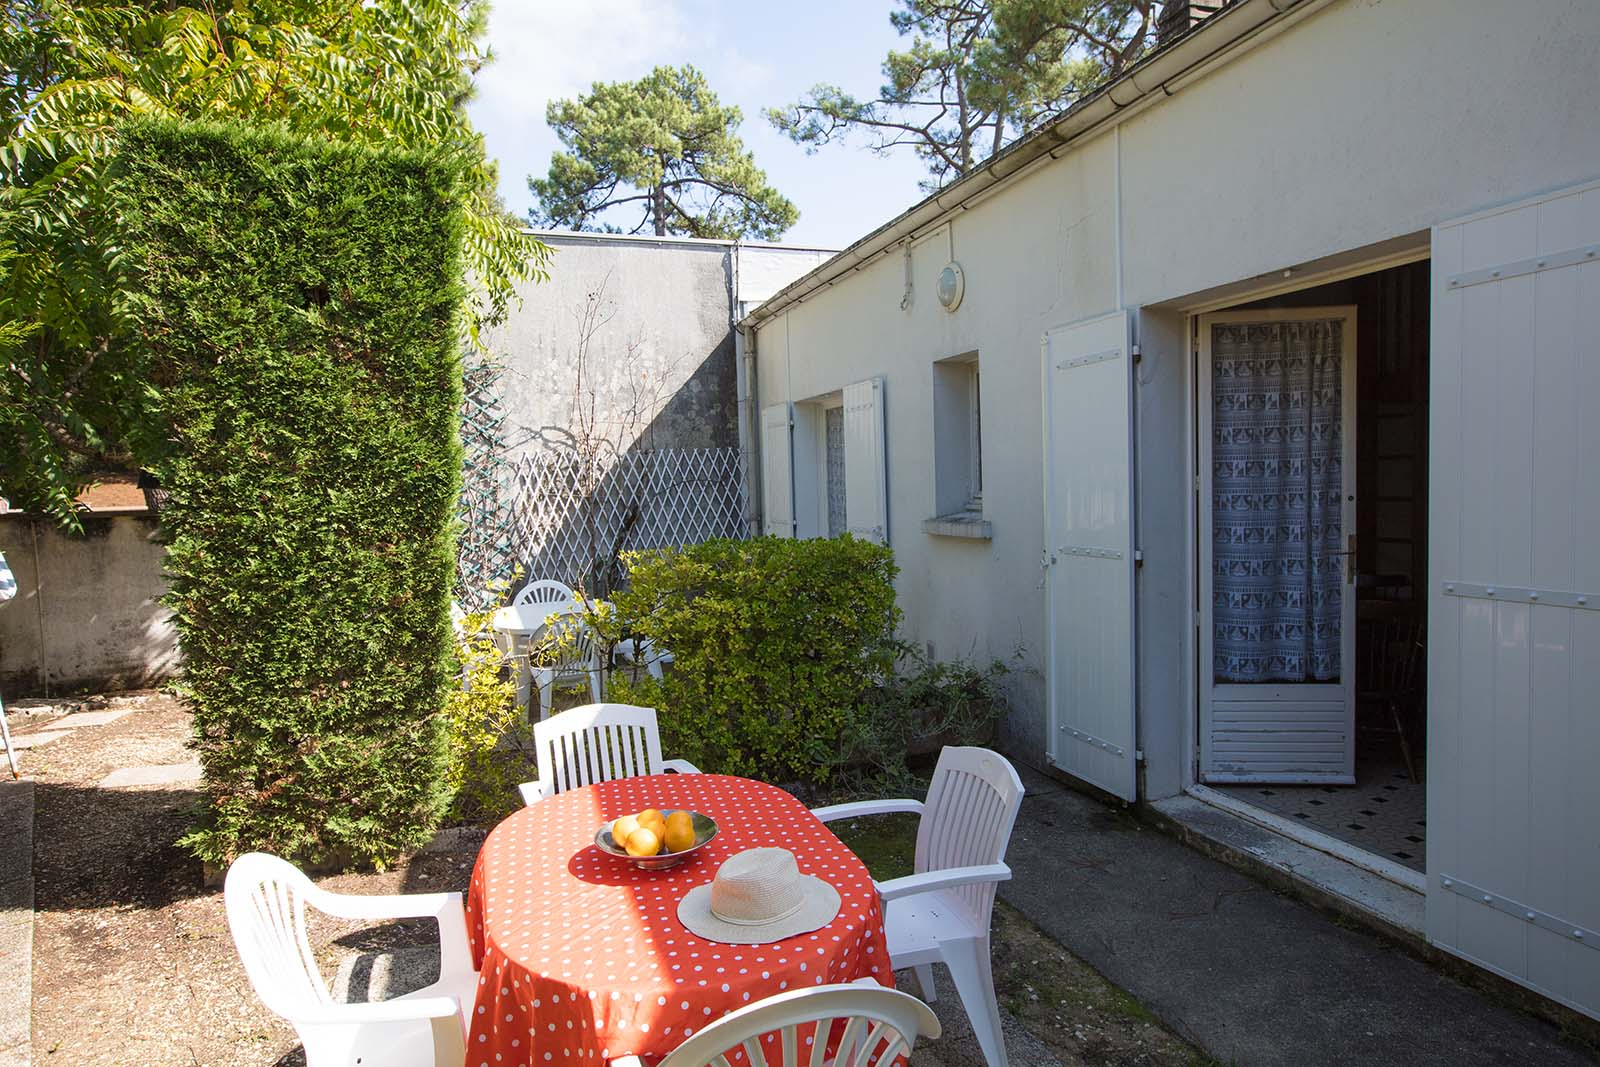 Studio apartment rental 4 people - Campsite near Royan (17)